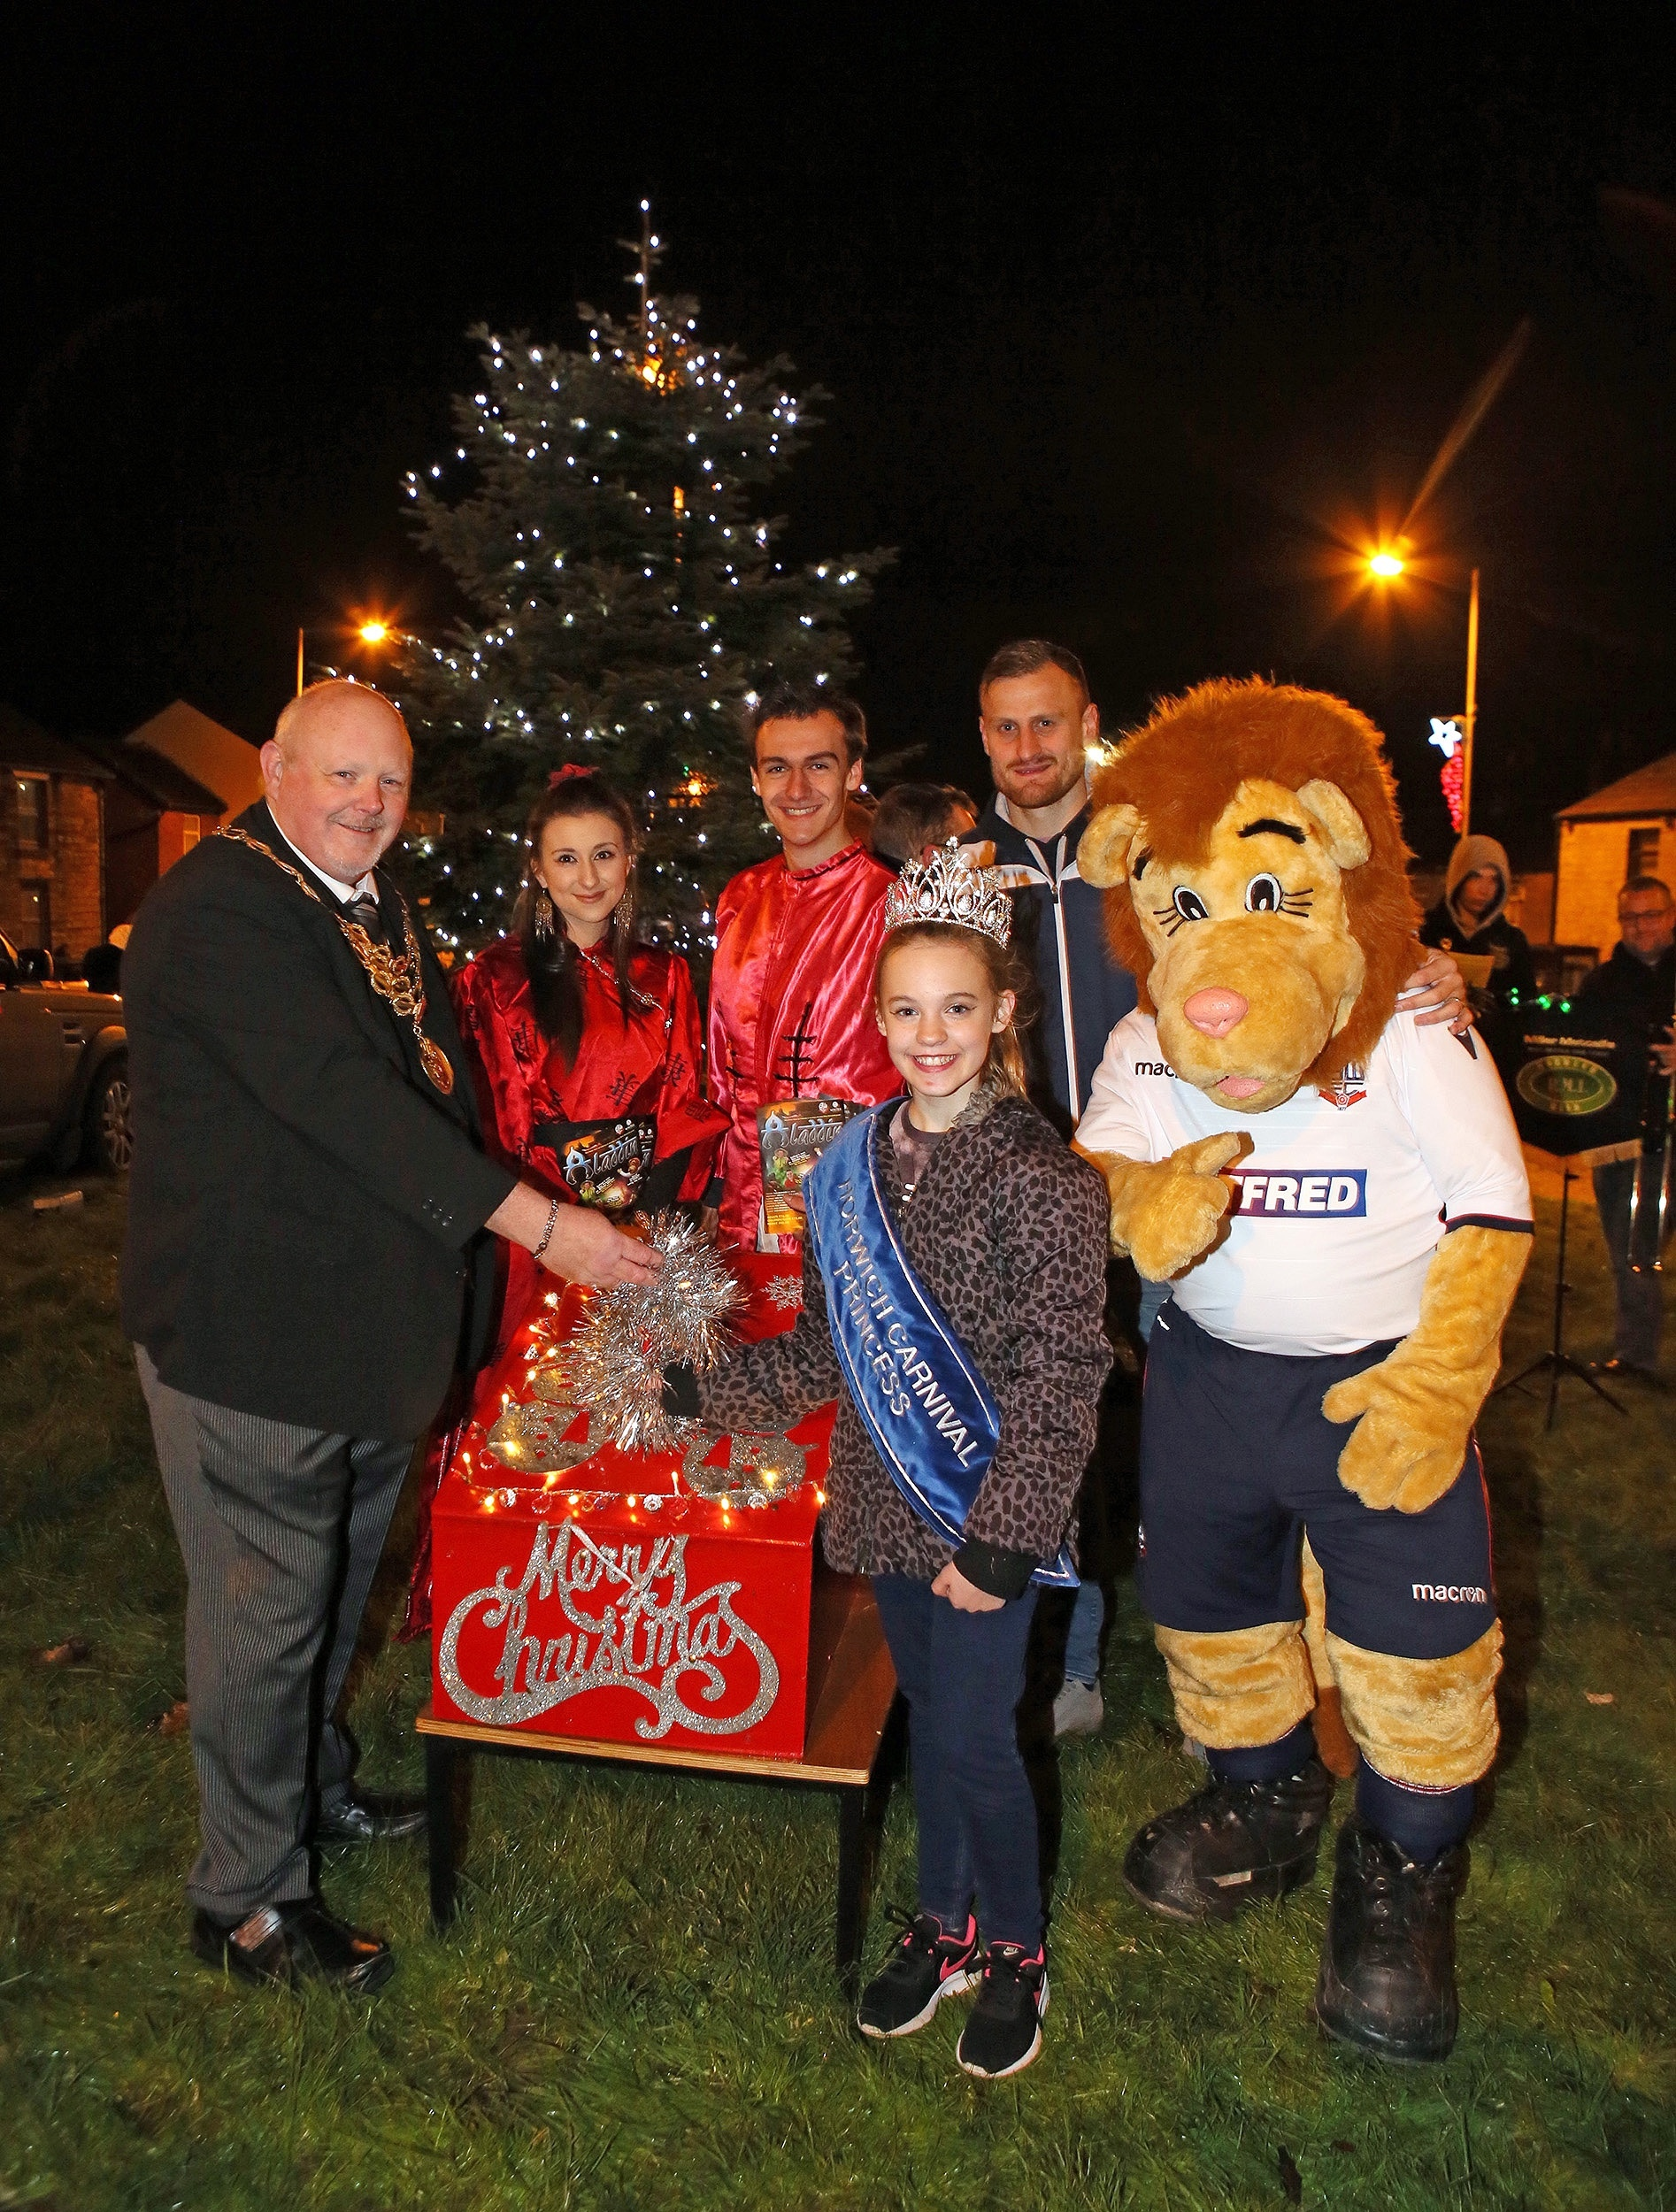 FESTIVE: Cllr Steve Rock with guests at the Christmas lights switch-on in Horwich Picture Gary Taylor